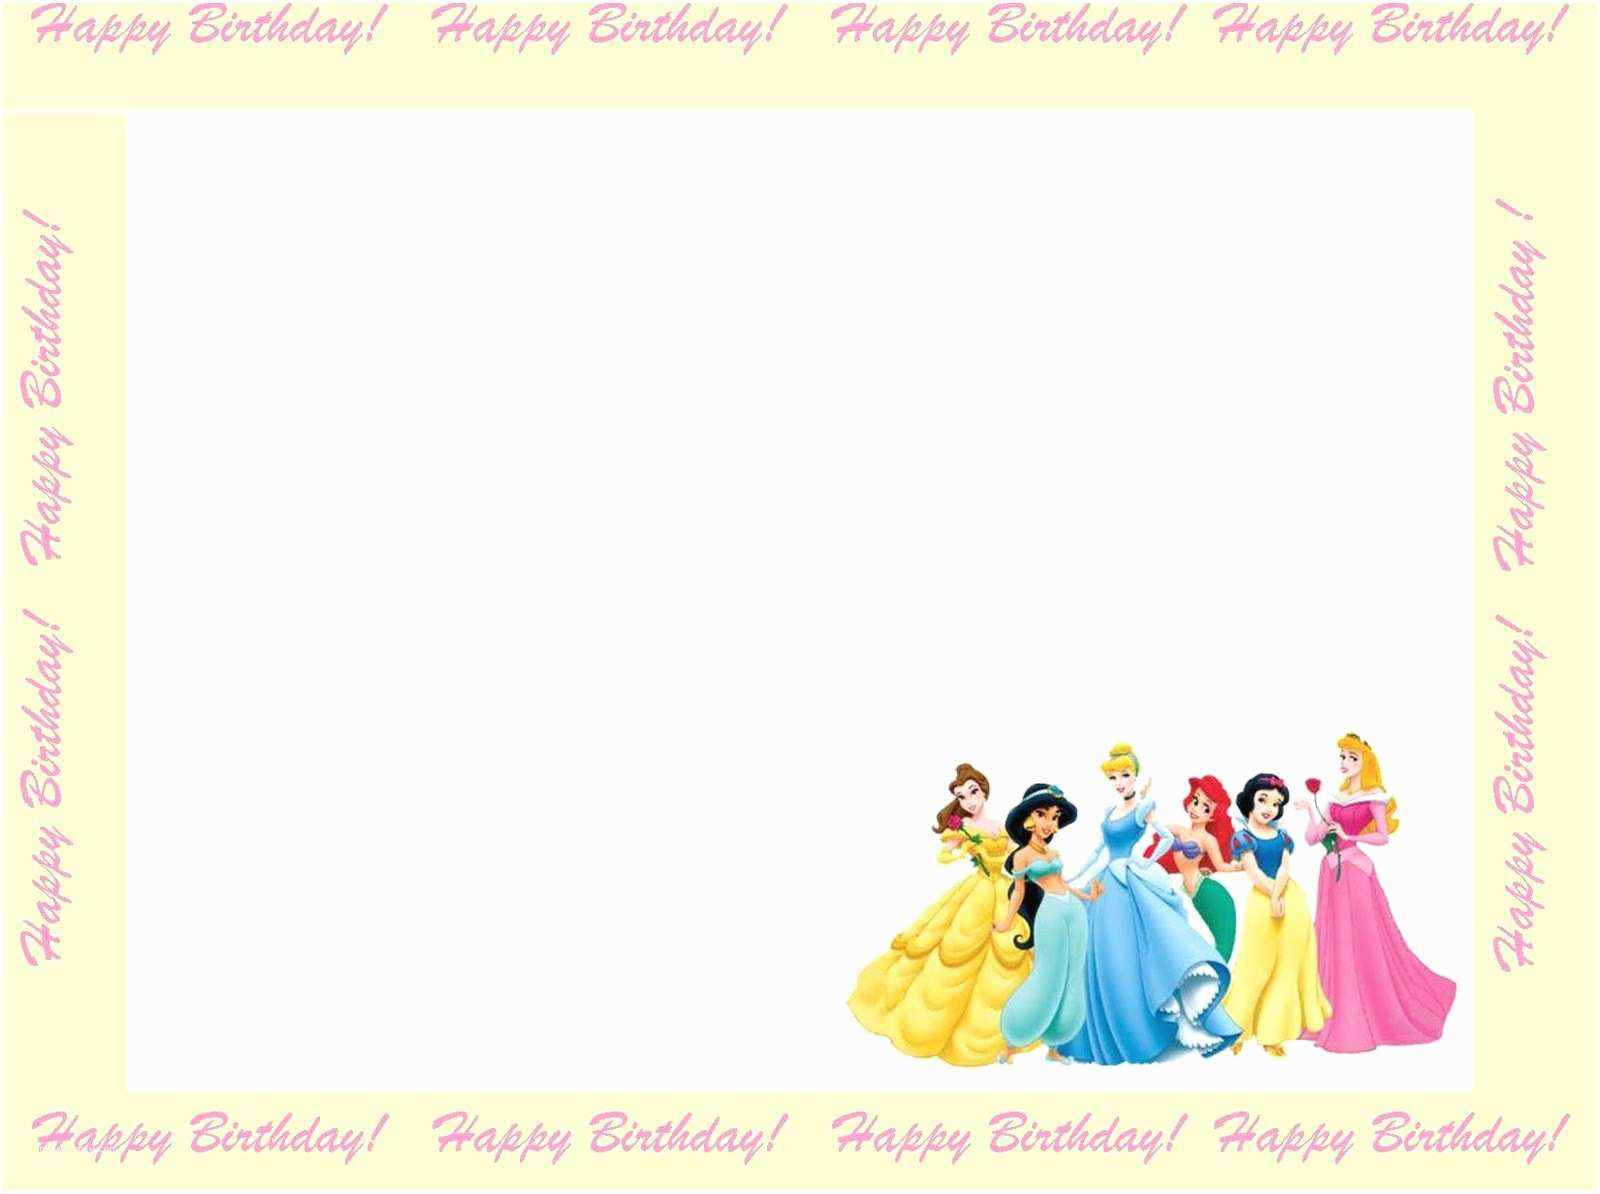 Disney Princess Birthday Invitations 6 Free Borders for Birthday Invitations